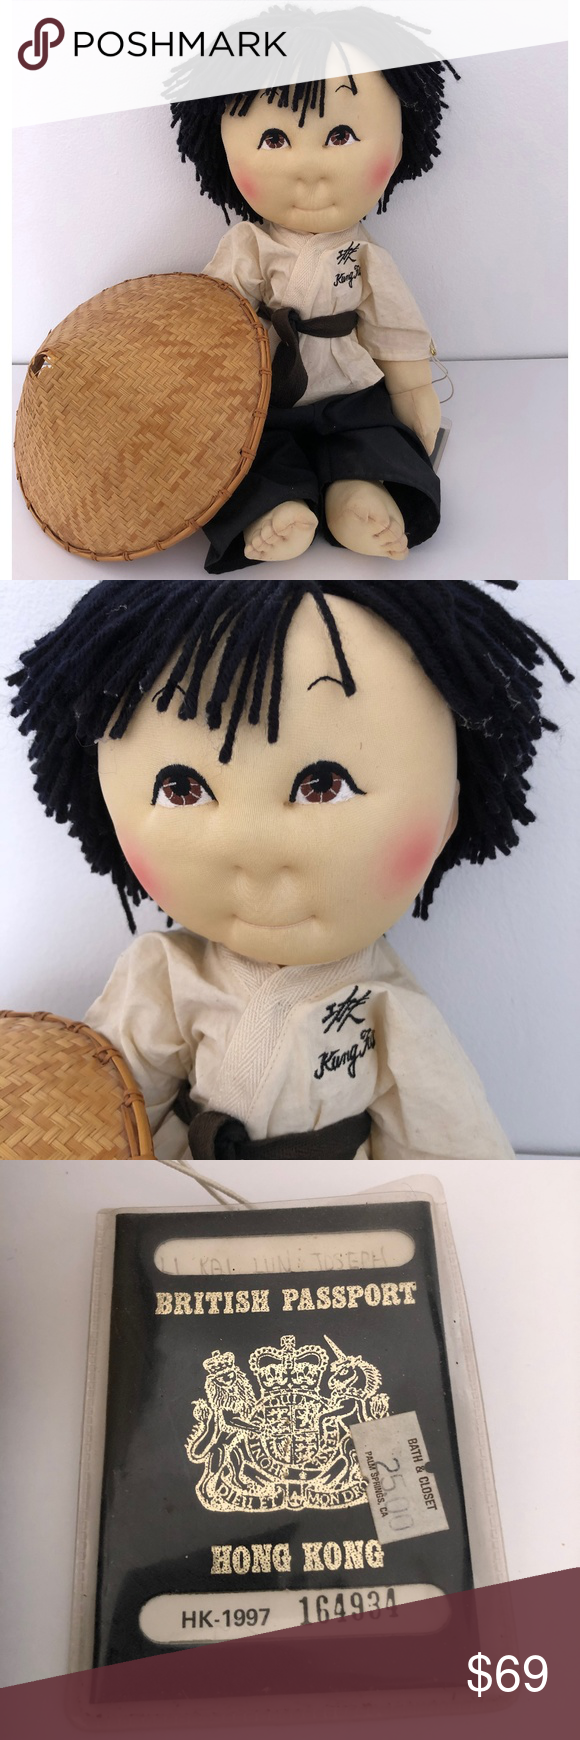 Vintage Soft Cloth Doll Rice Paddy Baby Vintage Soft Martial Arts Clothing Cabbage Patch Dolls